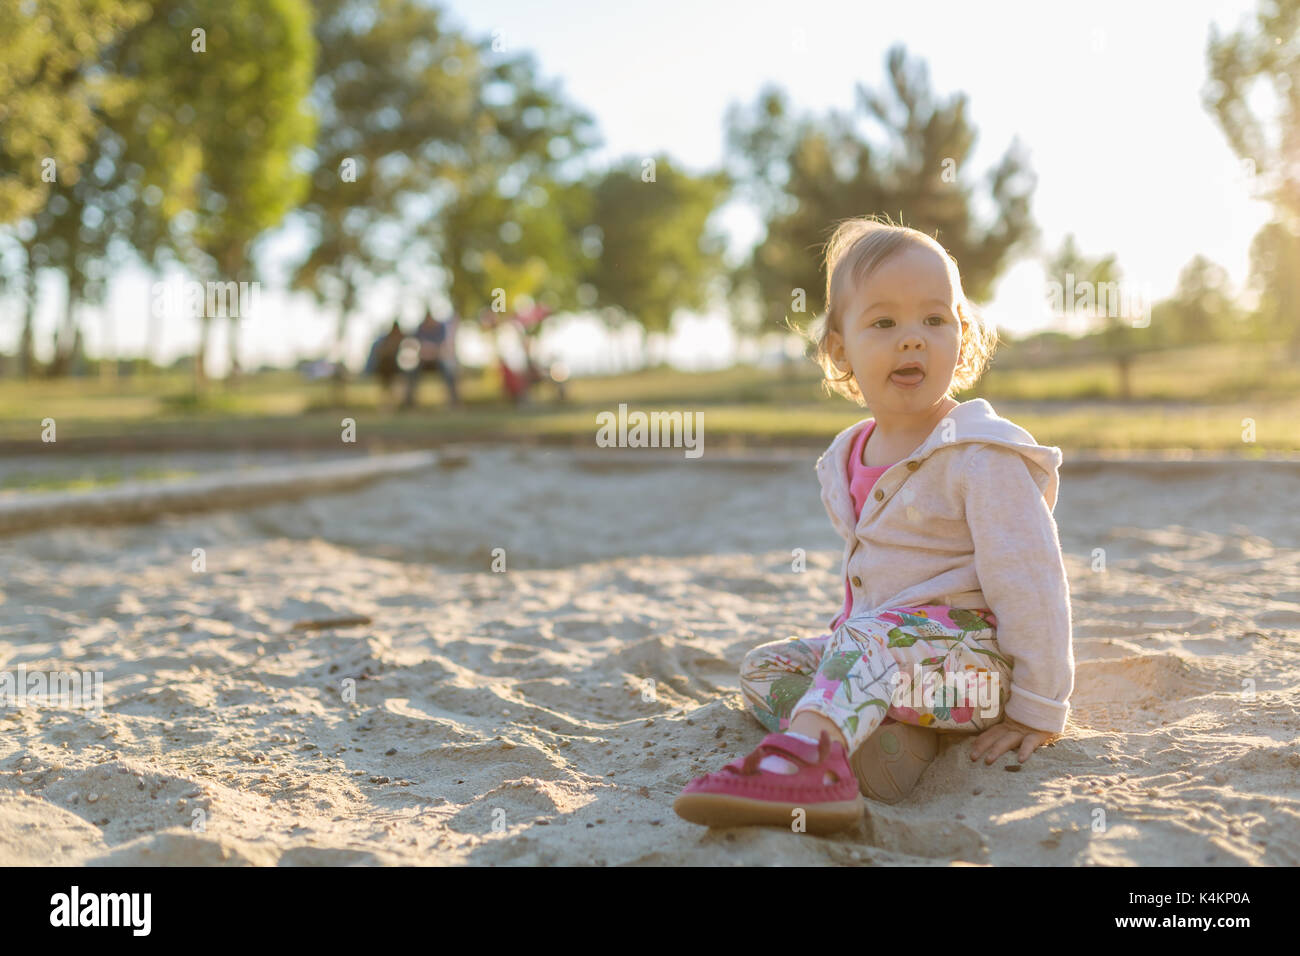 Fifteen months old baby girl playing in the sandbox in the sunset - Stock Image